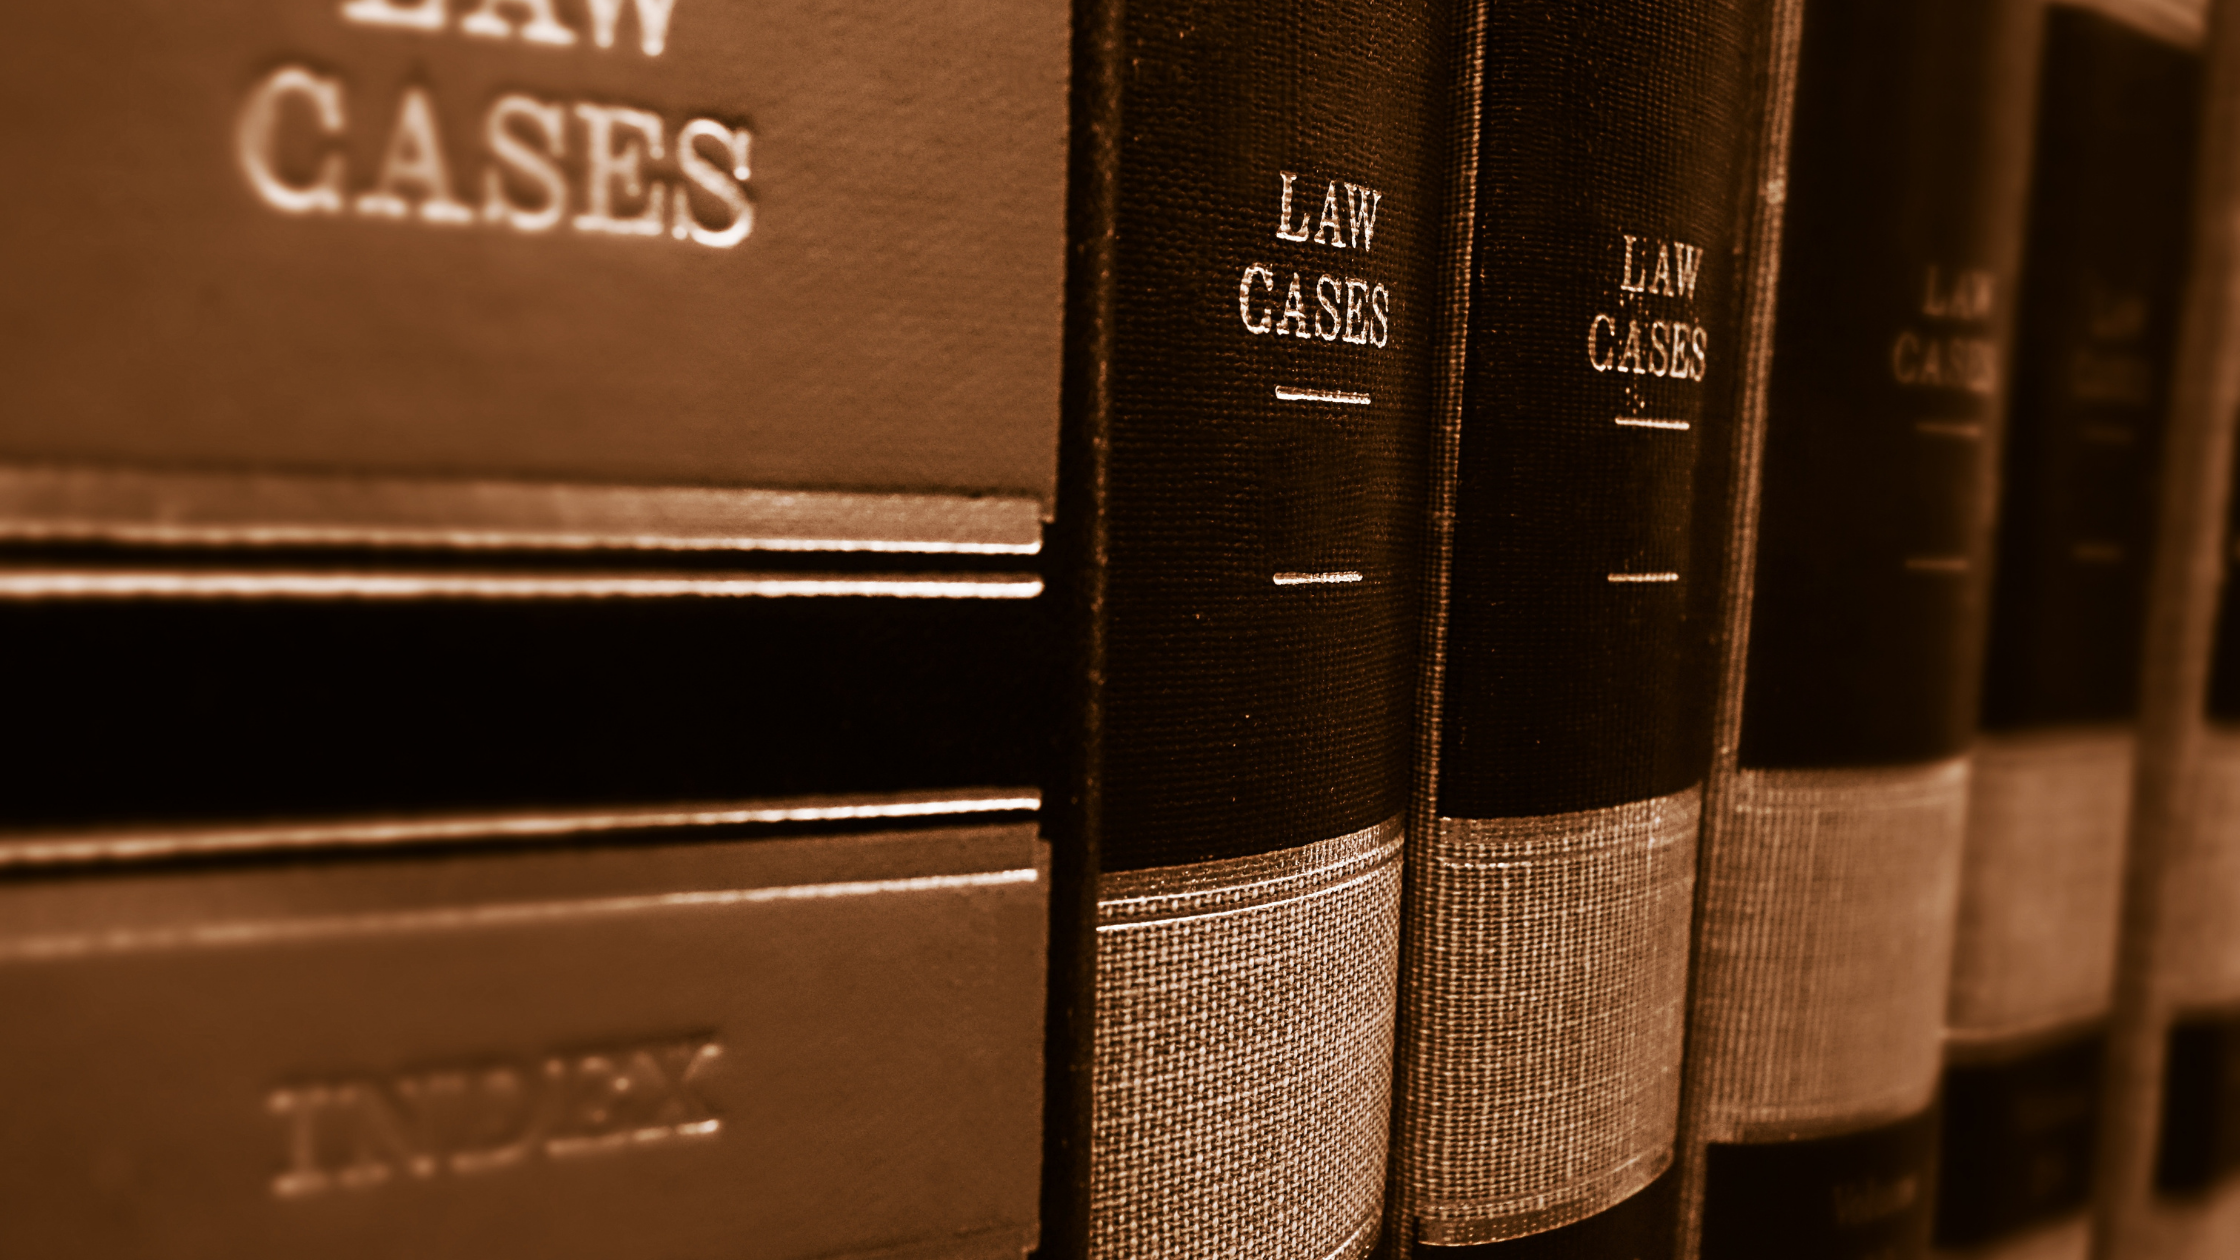 In Federal Court on a Trust or Estate Related Matter and Want to Get Out?  Princess Lida May Be the Answer.